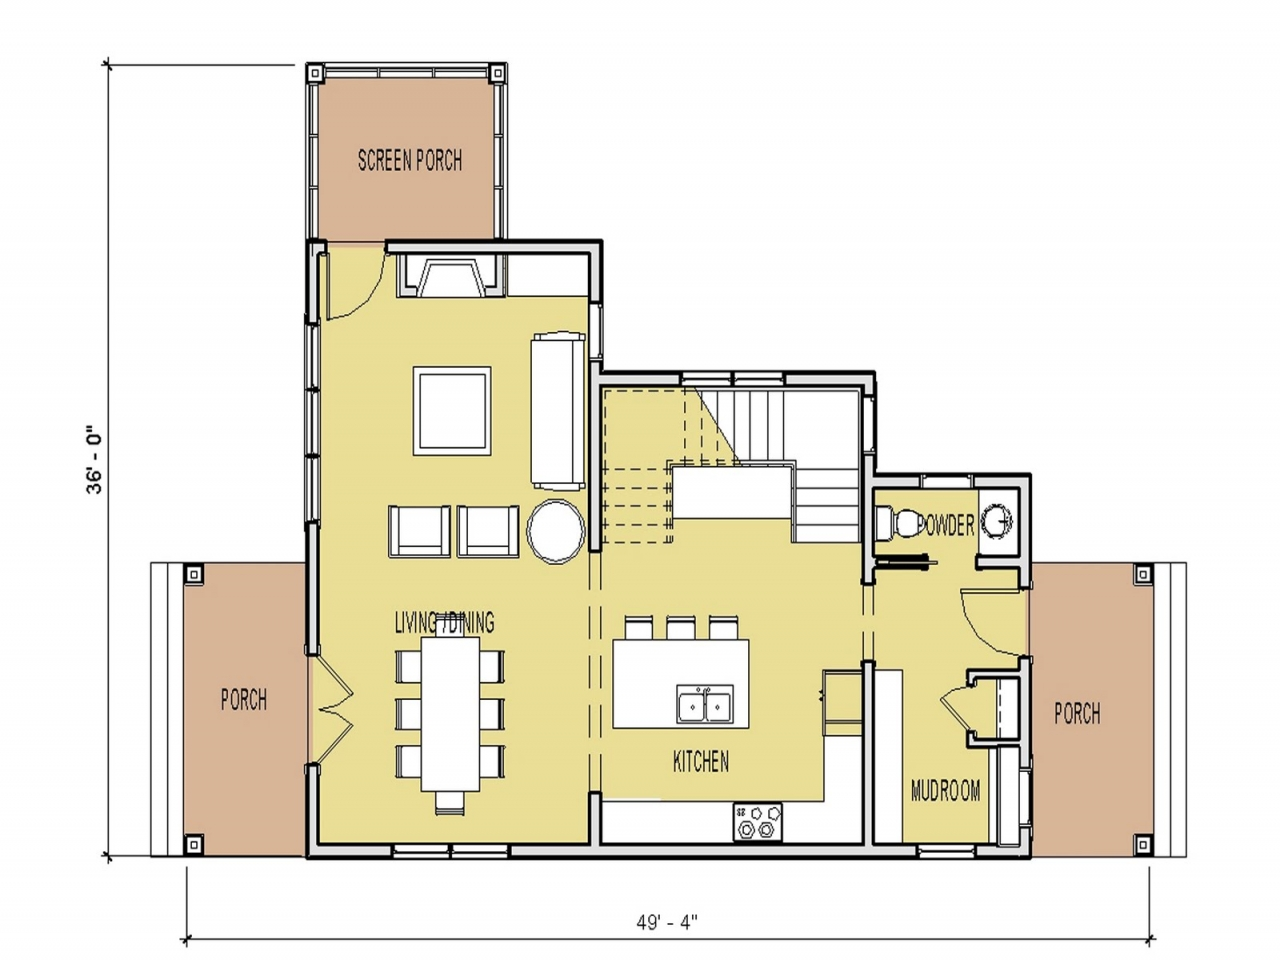 Small house floor plans under 1000 sq ft unique small for Home design layout ideas